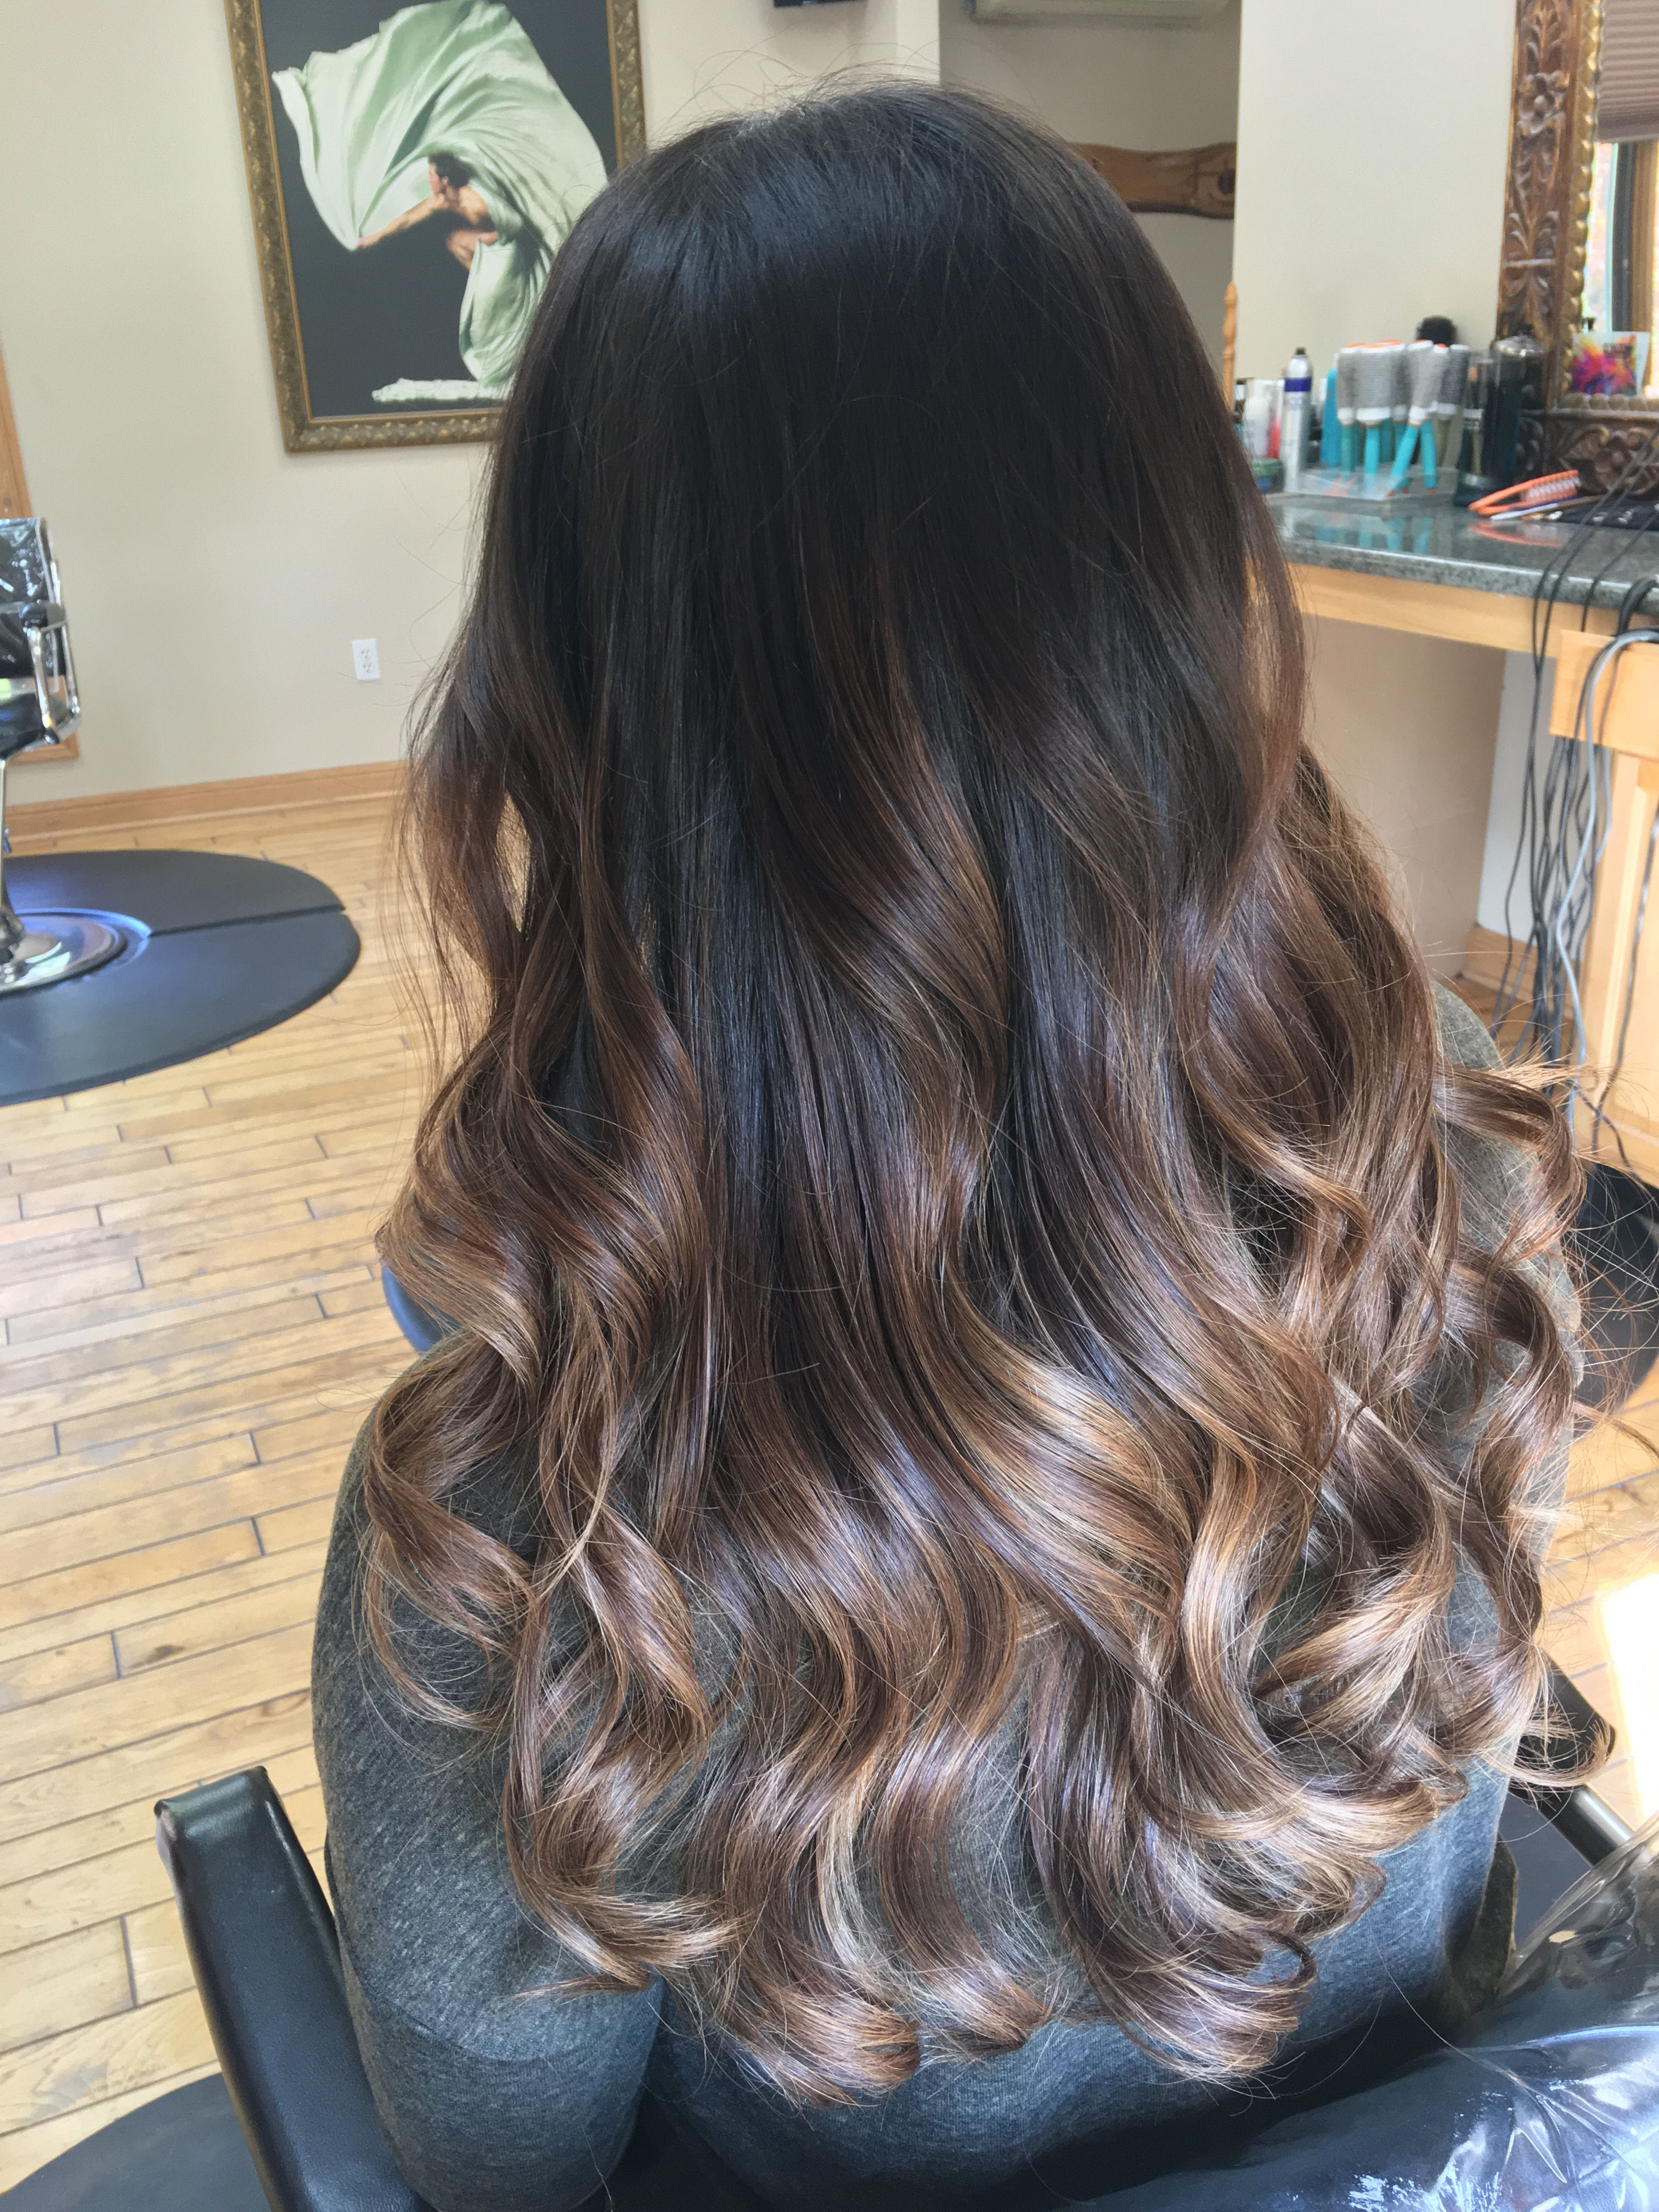 Top Shocking Balayage For Dark Hair - Trend Today : Your #1 source for the latest trends, exclusives & Inspirations